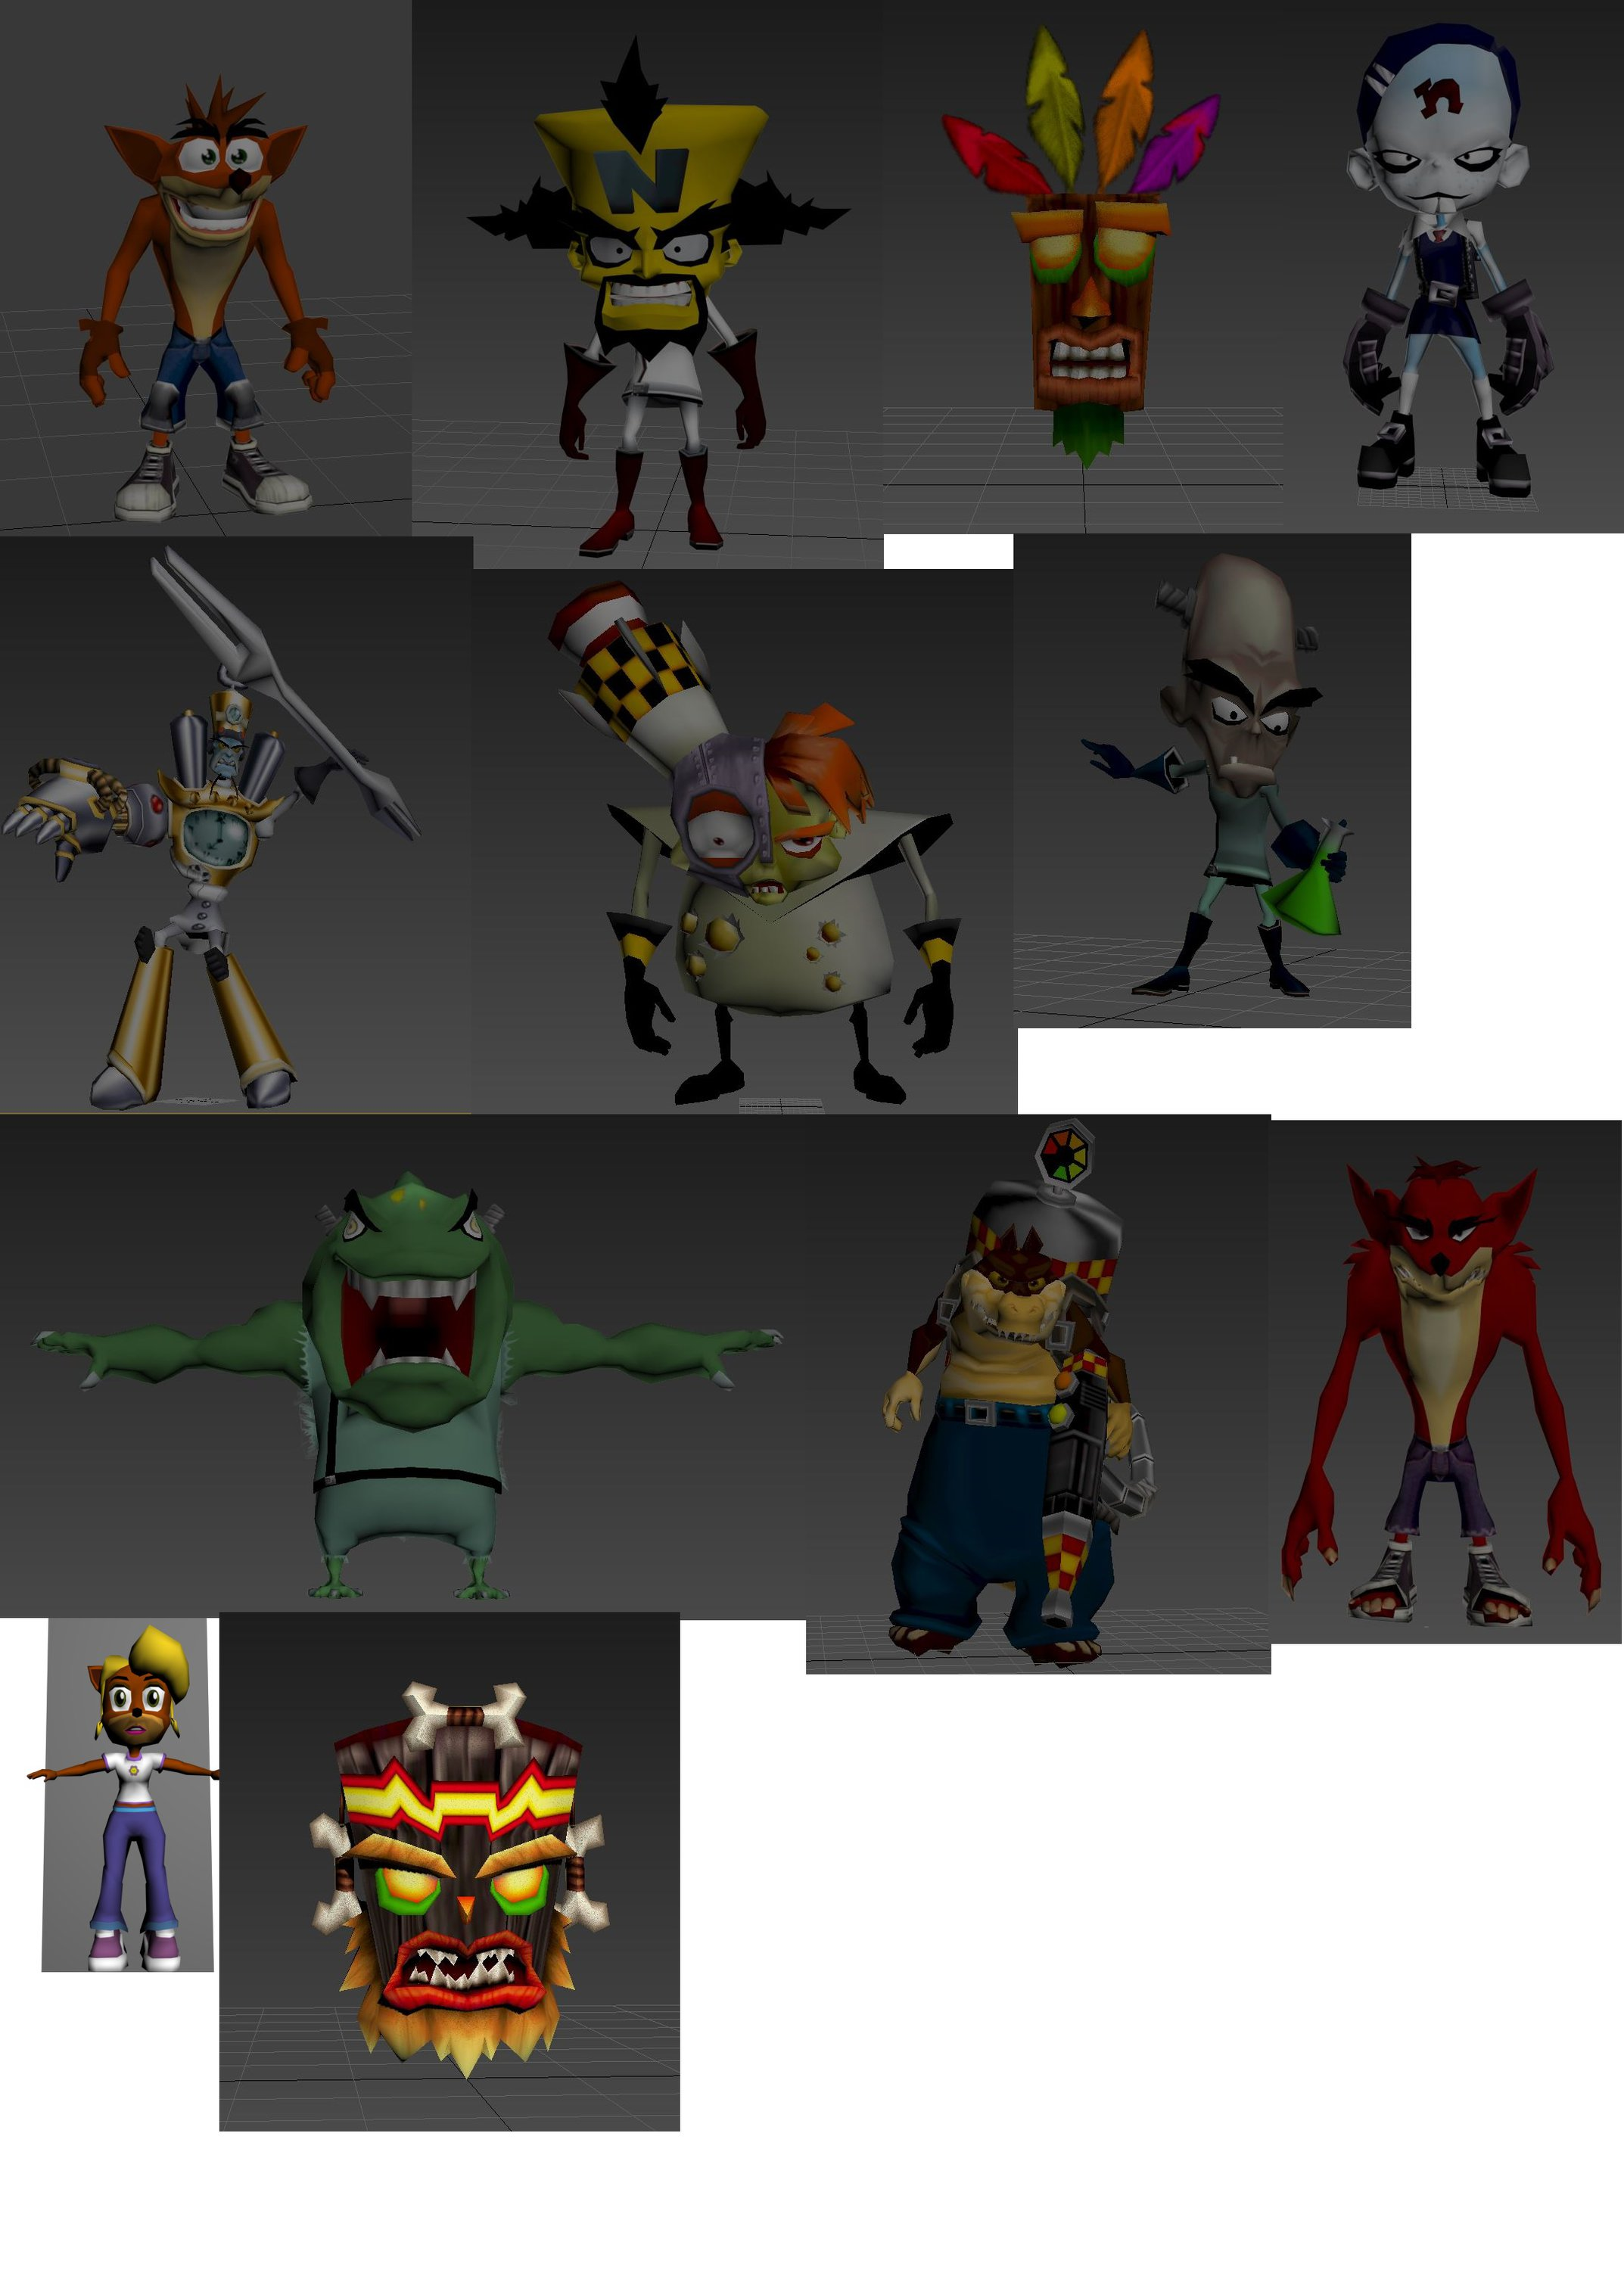 3d Models For Animation I Need Help For Rig And Animation Of My 3d Models Unity Forum